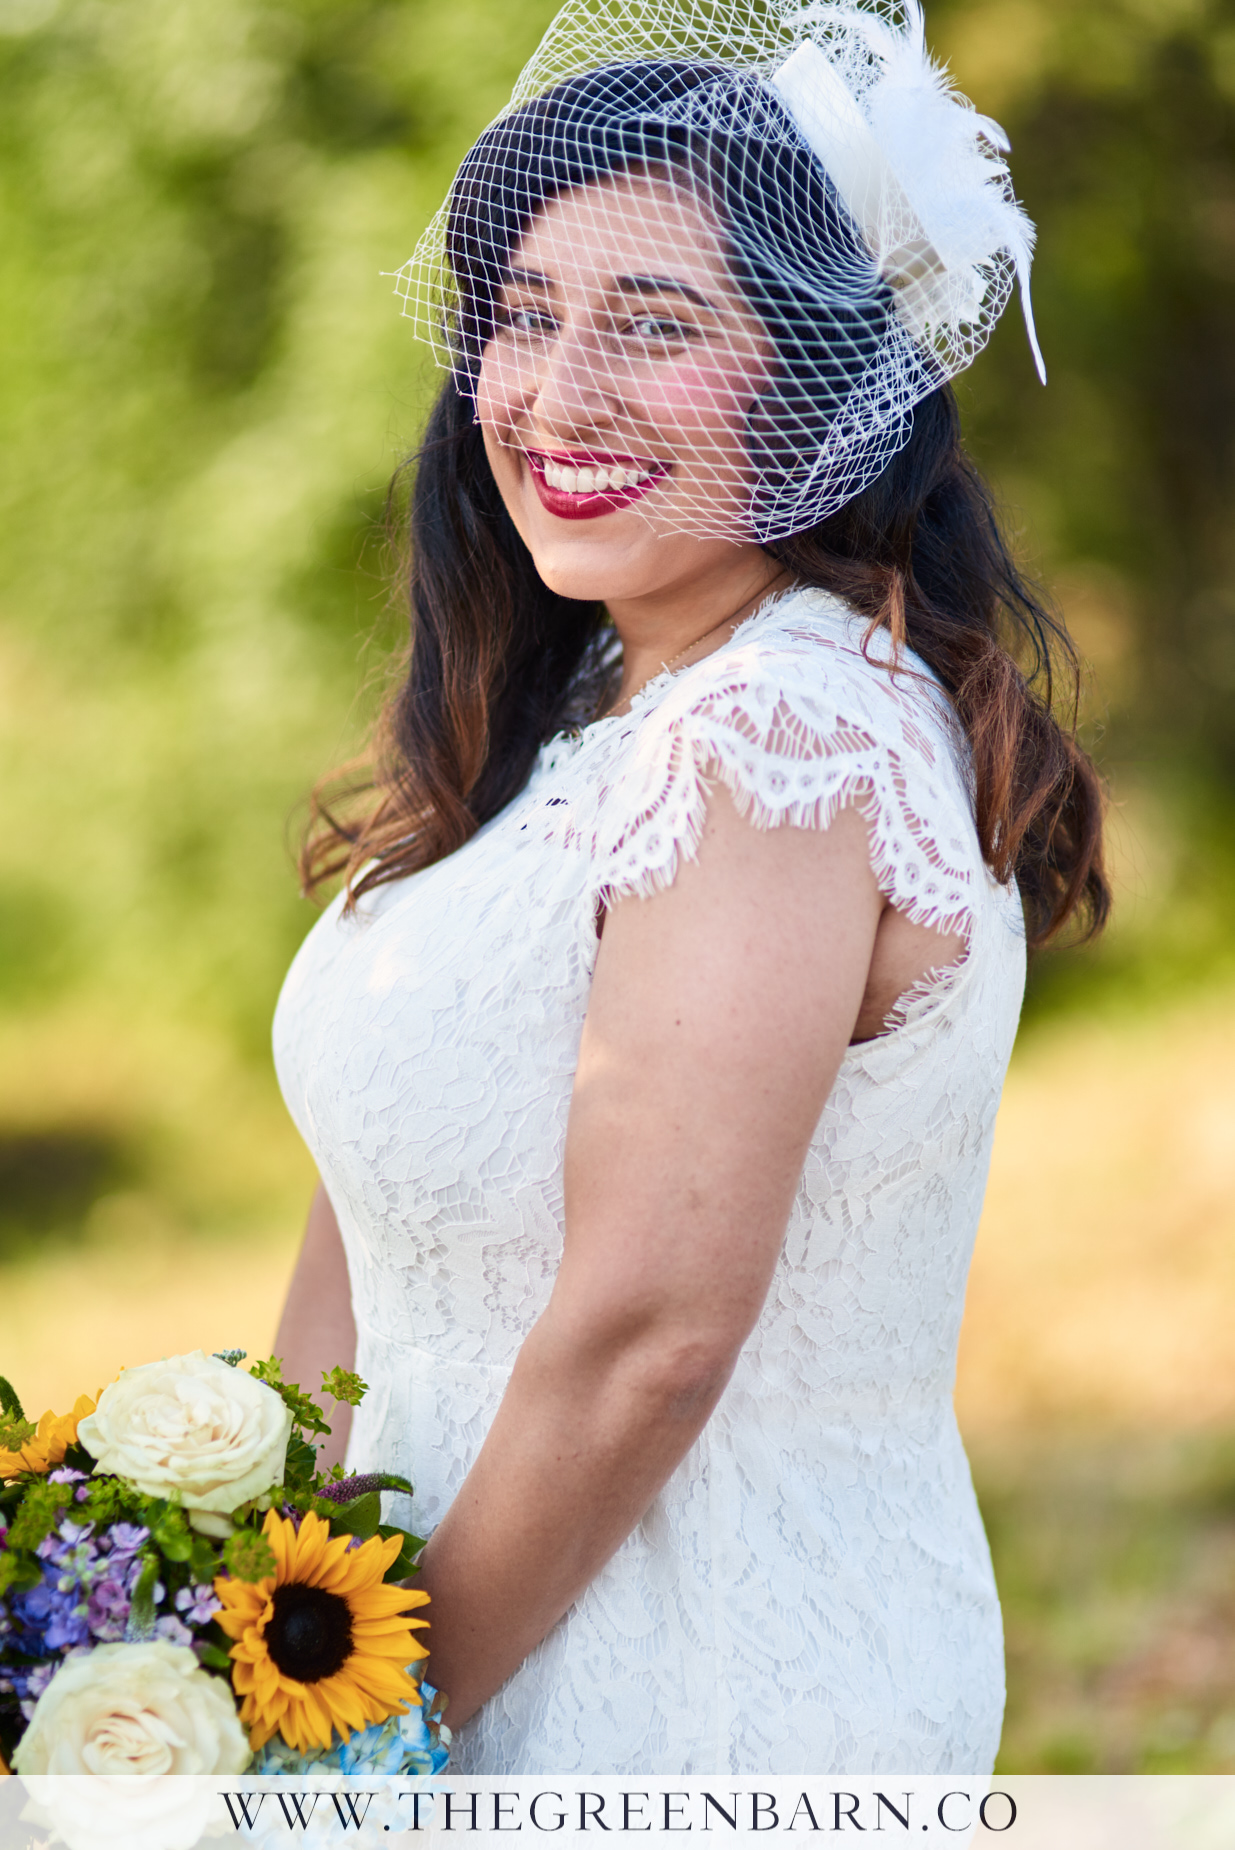 Bridal Portrait of Bride with Lace Dress and Birdcage Veil Vintage Inspired | NH Wedding Photographer